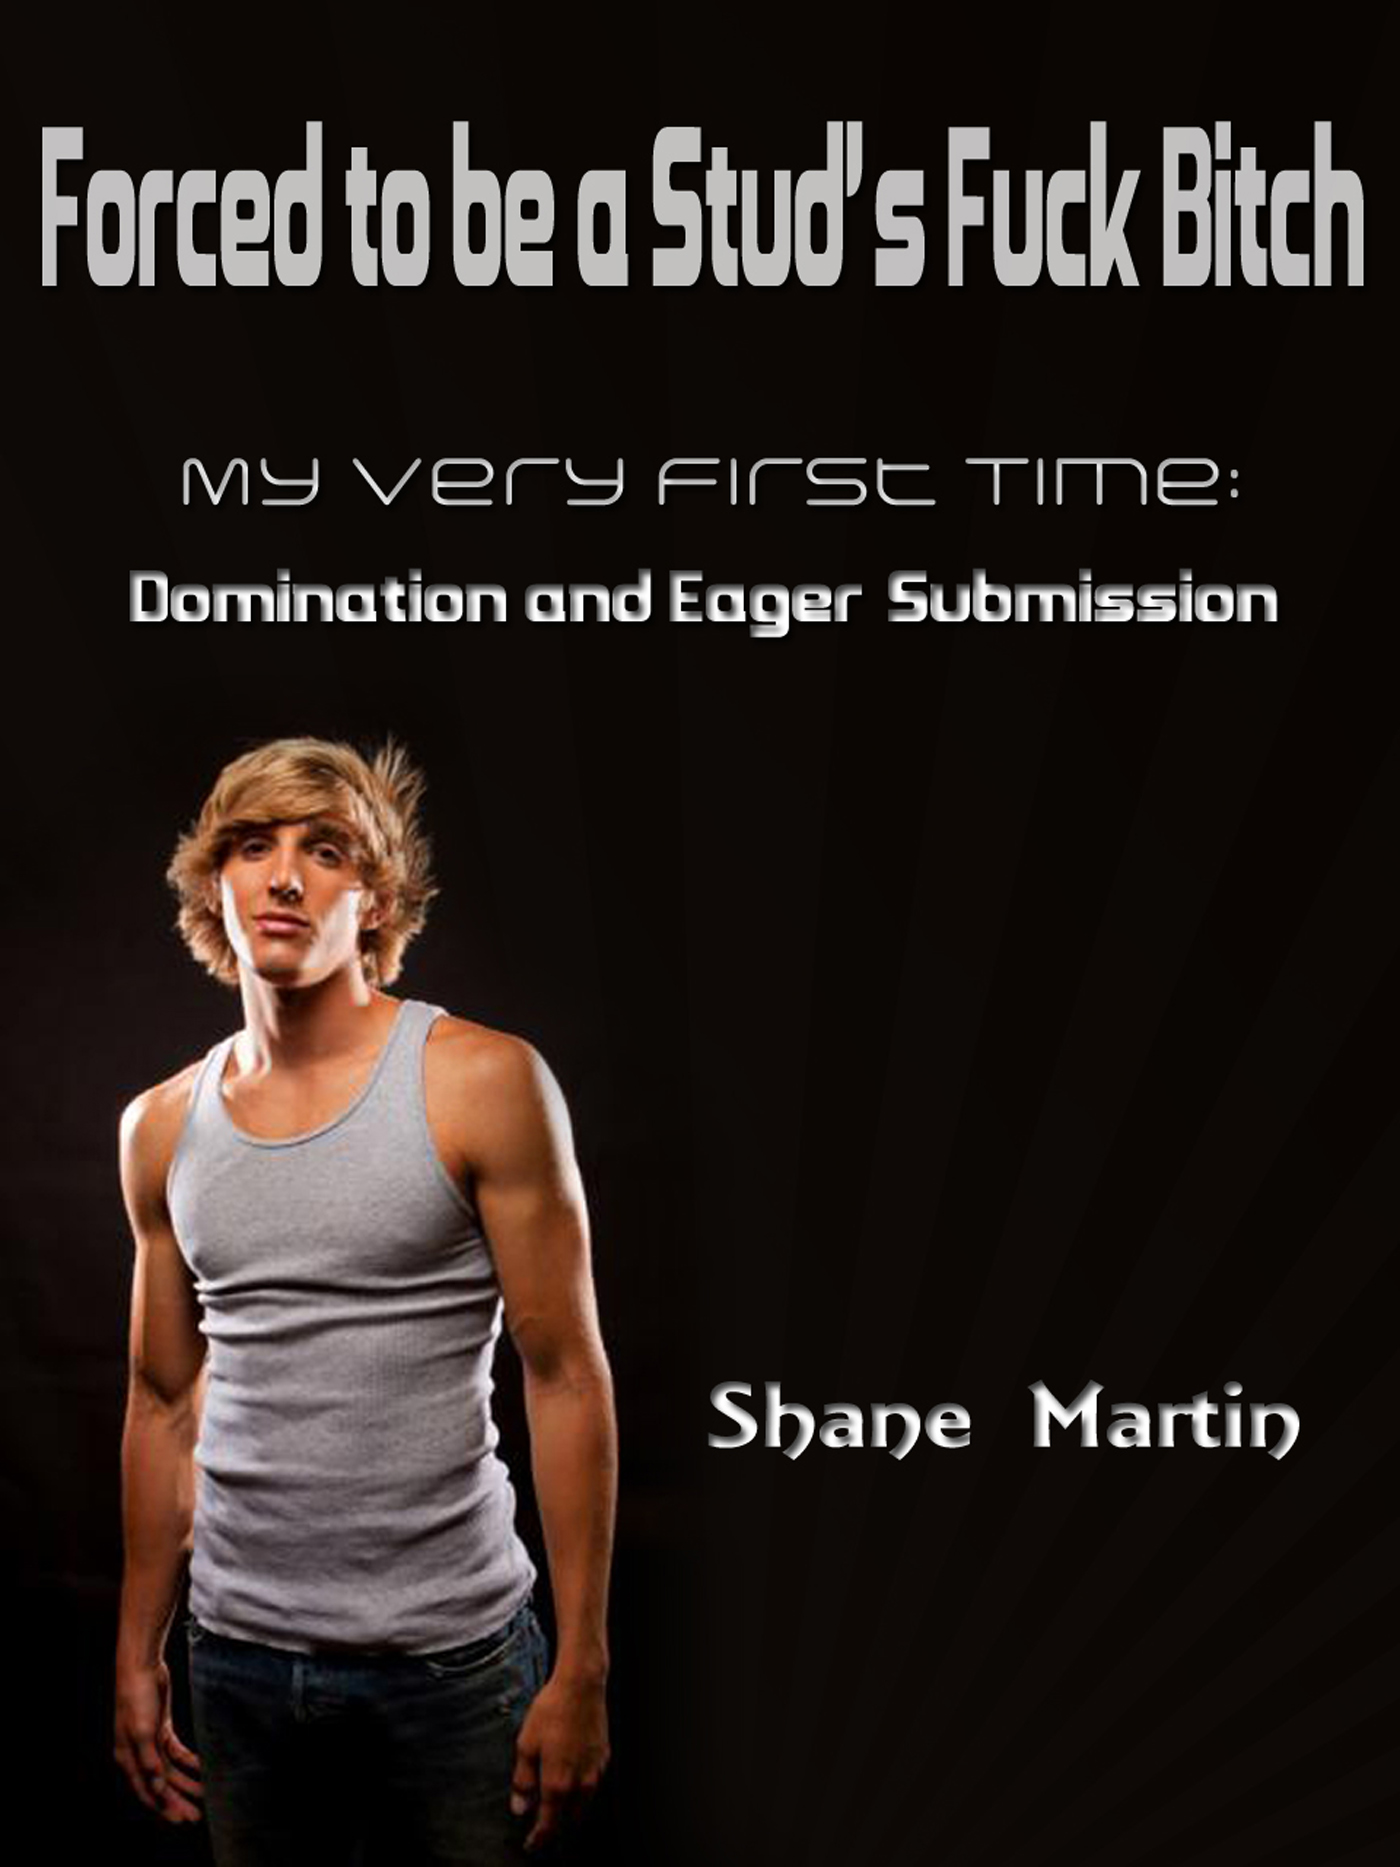 Shane Martin - Forced to be a Stud's Fuck Bitch: My Very First Time for Domination and Submission